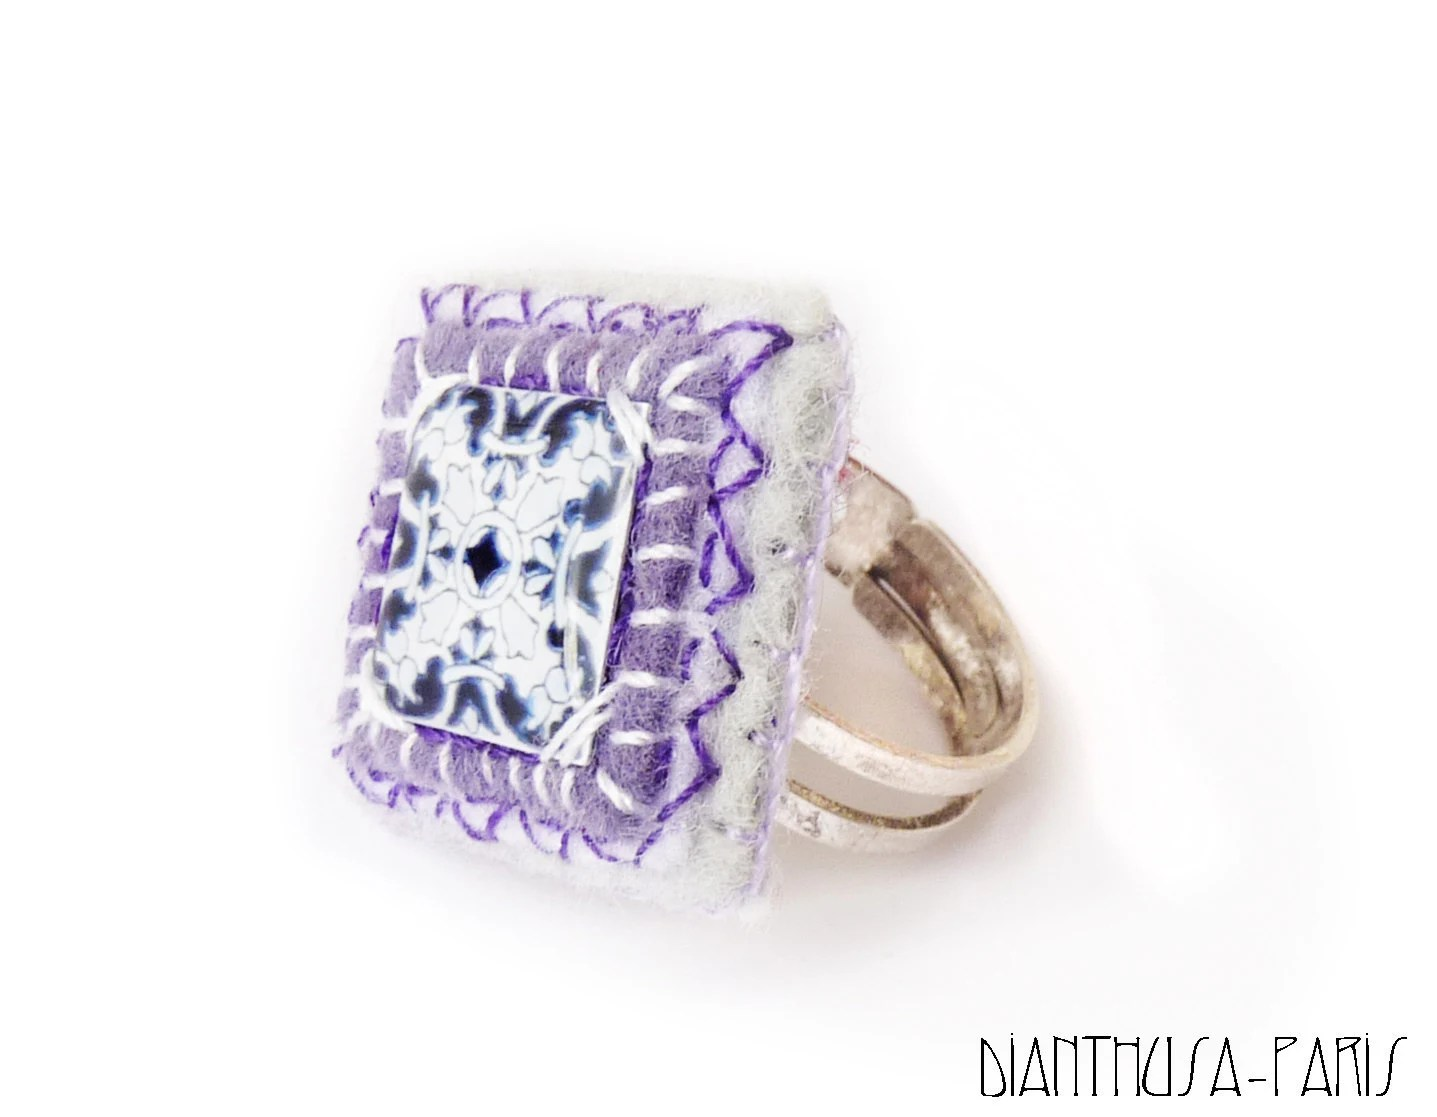 Square ring with Mediterranean tile in white, purple and blue tones - Dianthusa